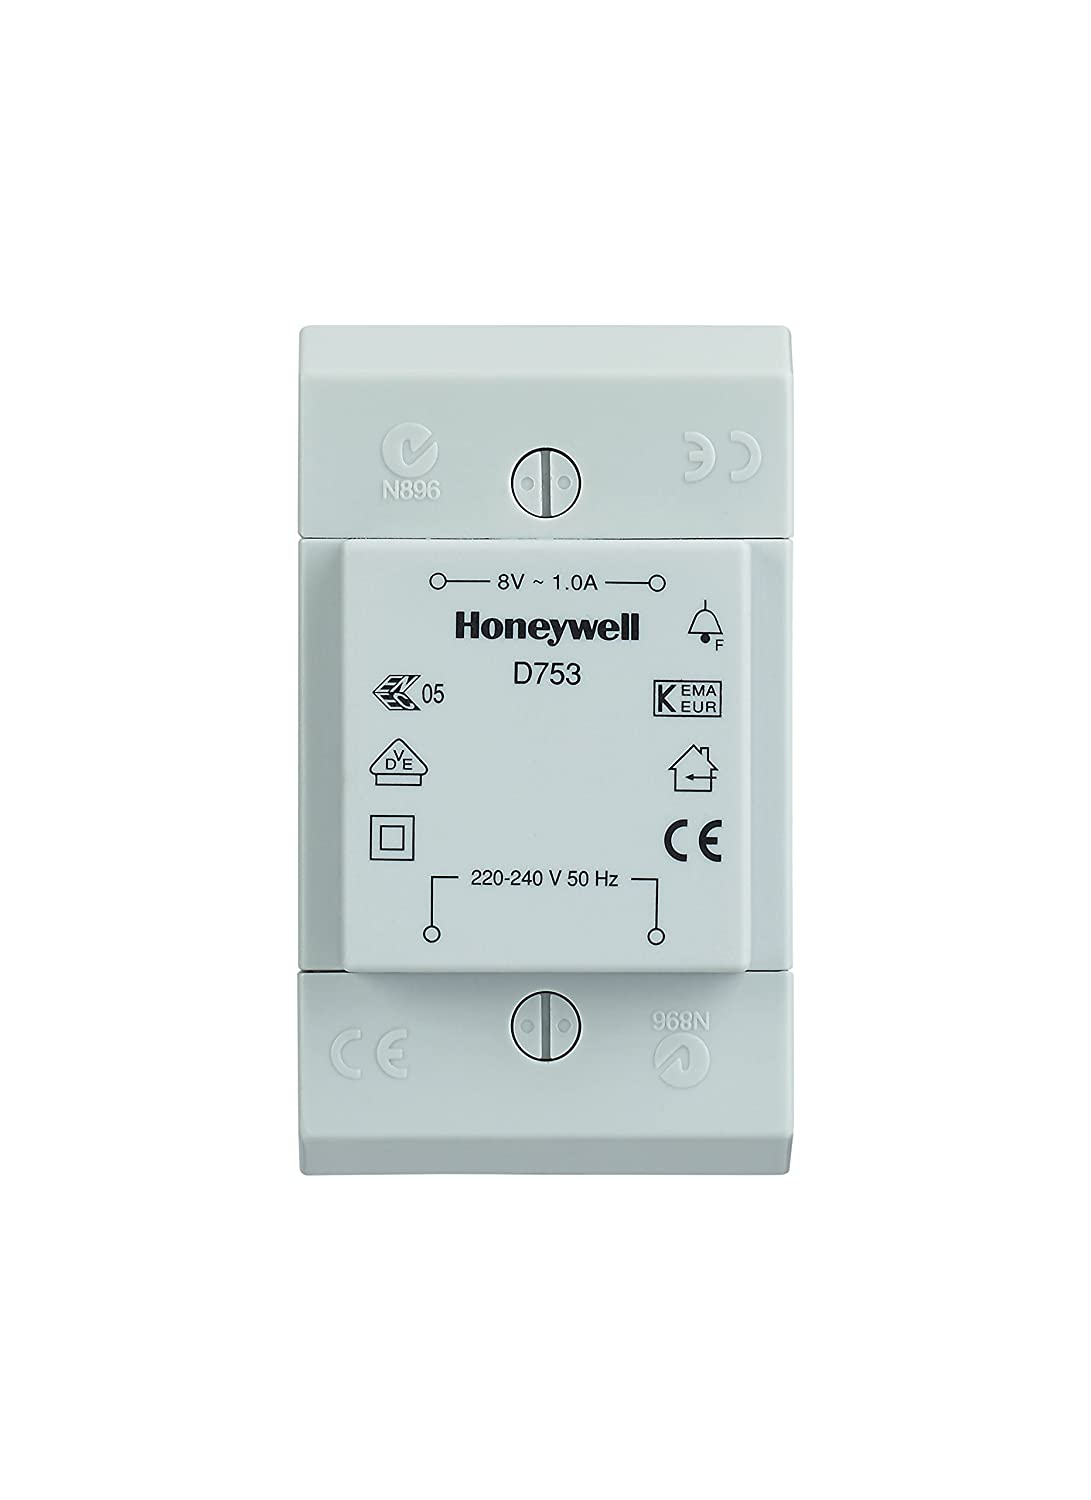 Honeywell D753 8V 1A Transformer: Amazon.co.uk: DIY & Tools